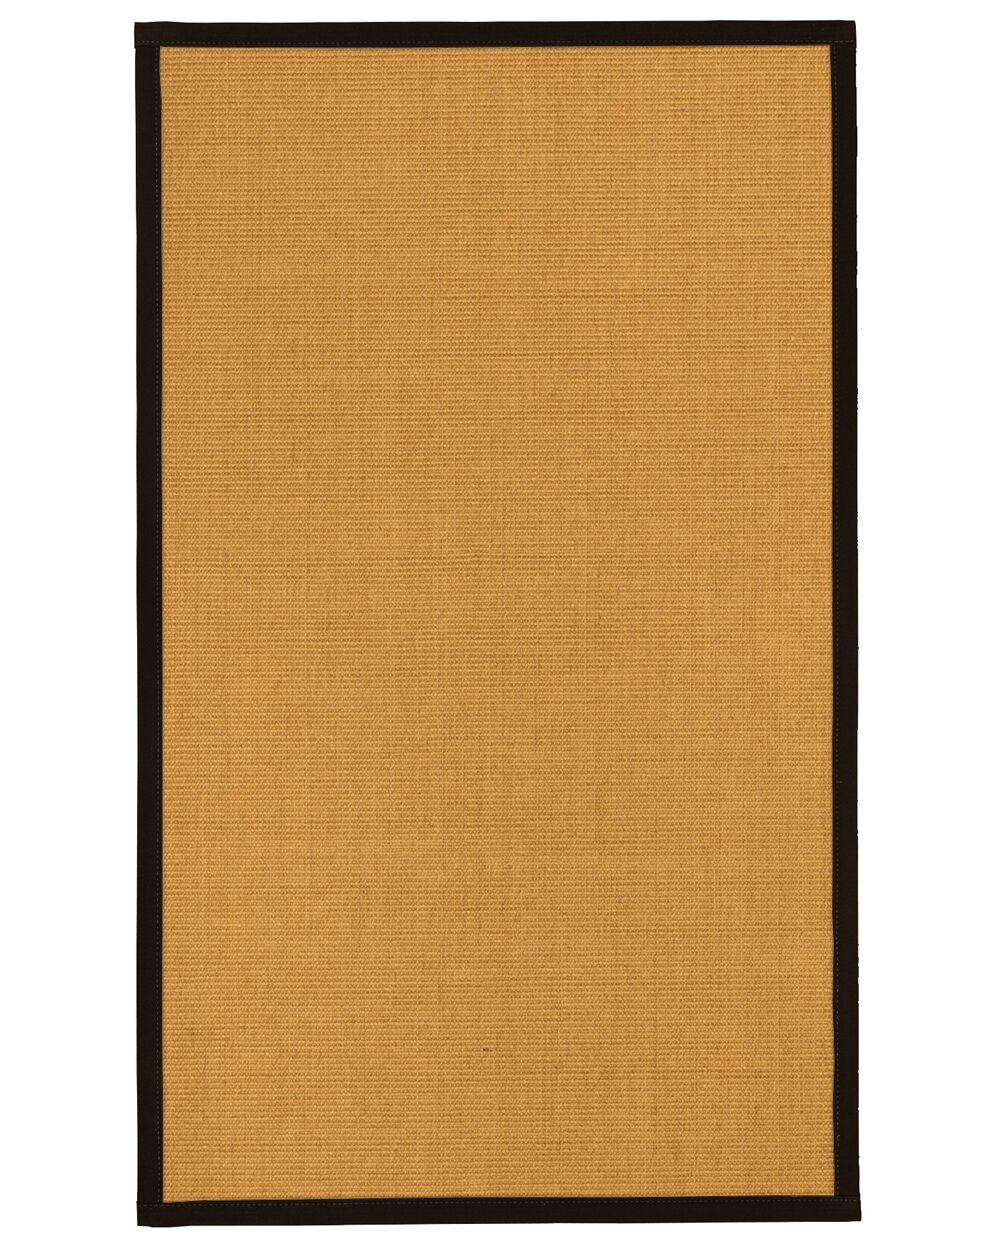 Asia Handwoven Flatweave Beige/Black Area Rug Rug Size: Rectangle 5' x 8'